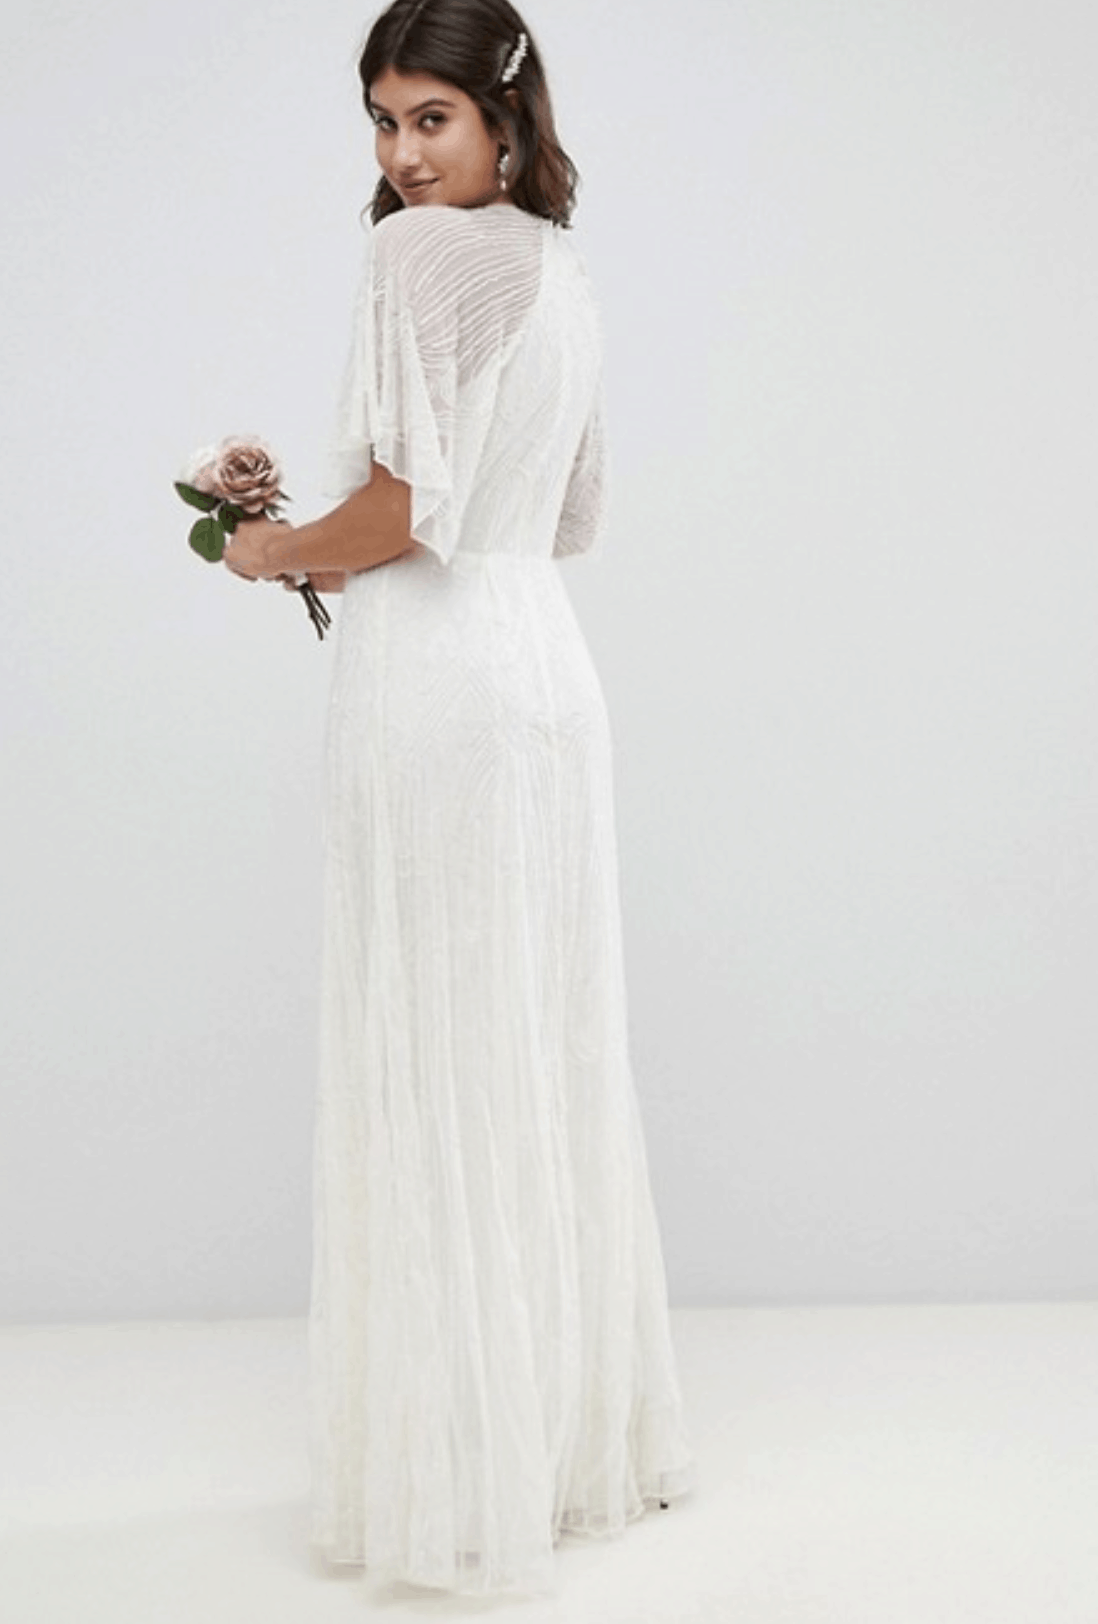 Asos Wedding Dress.20 Cheap Affordable Bridal Gowns And Wedding Dresses